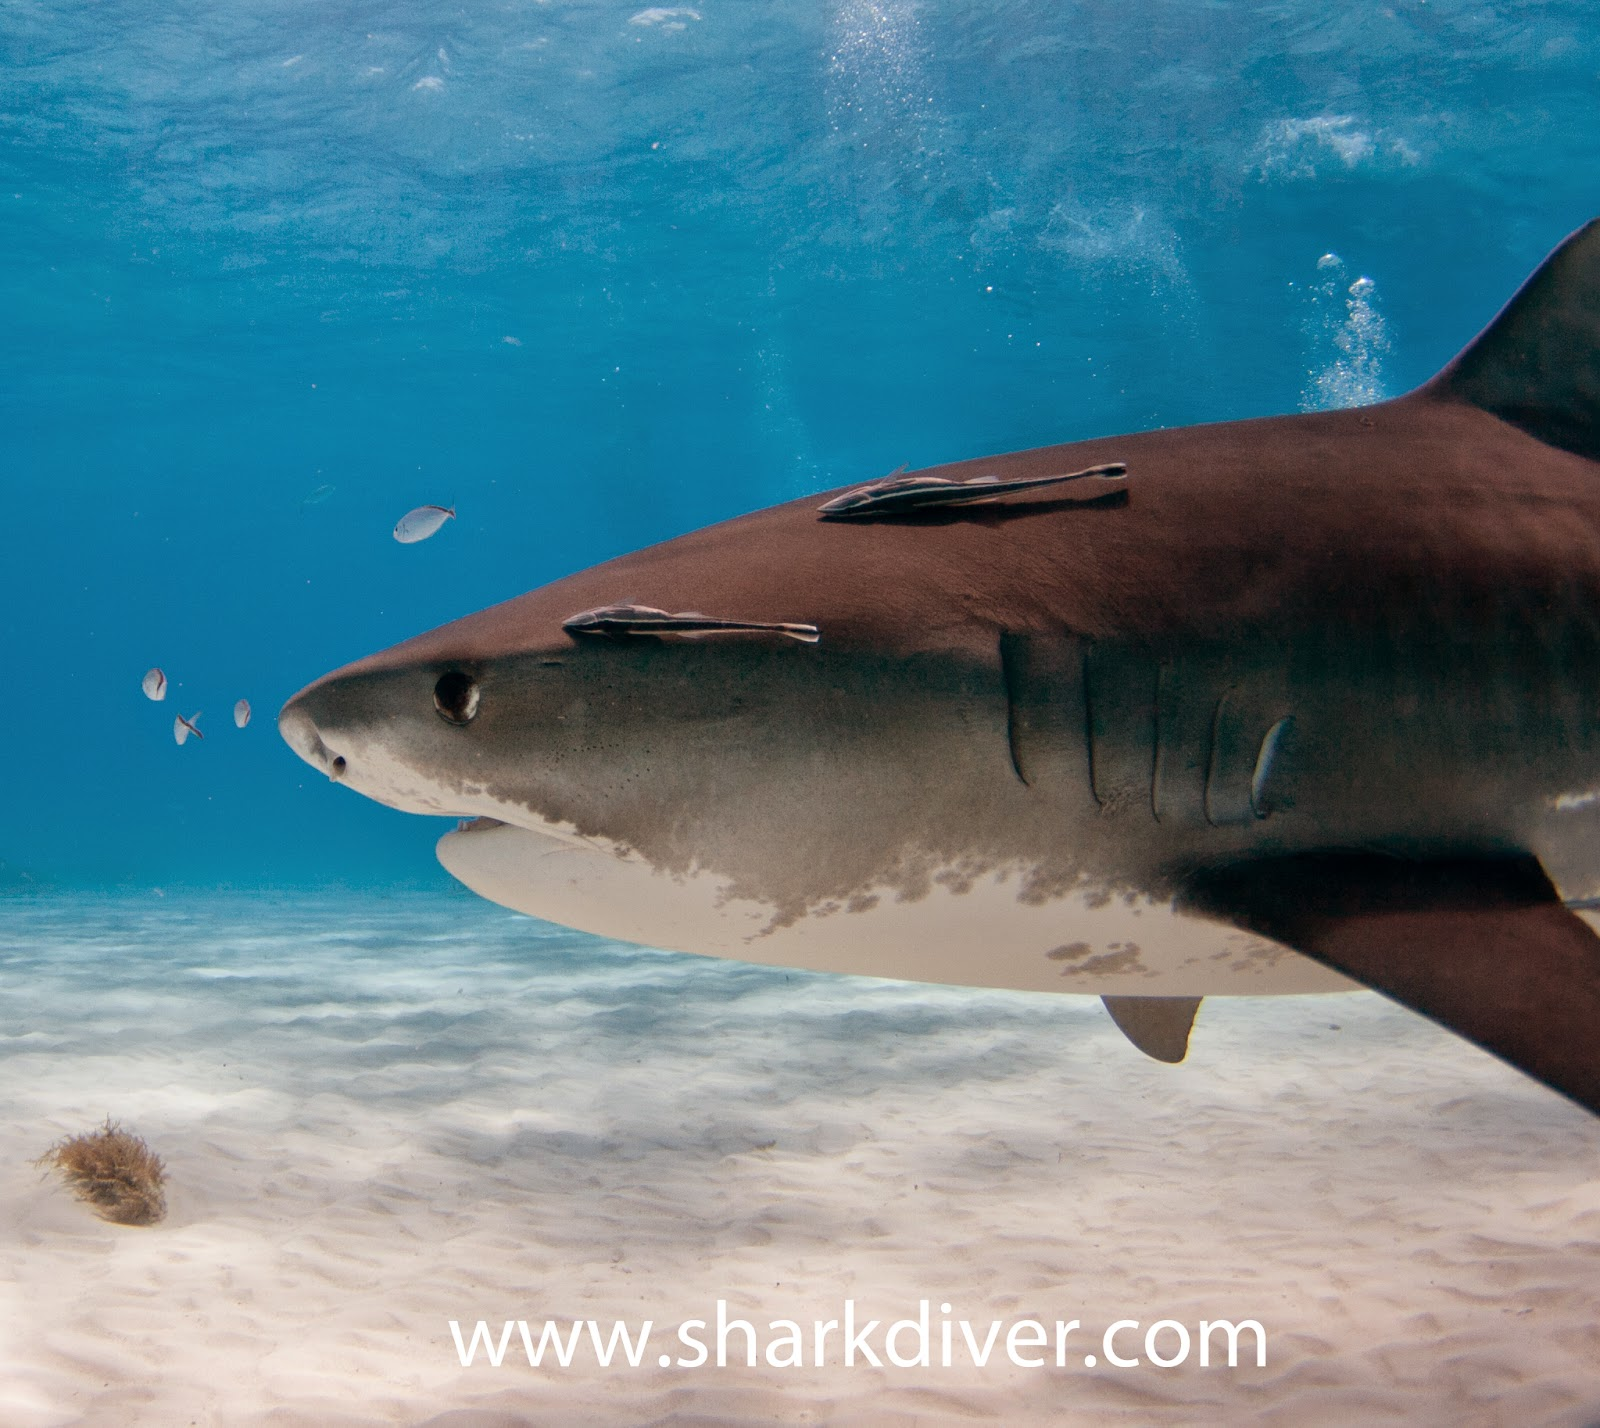 tiger shark vs. great white essay A comparison of tiger sharks and great white shark pages 2 words 1,148 view full essay more essays like this:  sign up to view the complete essay.